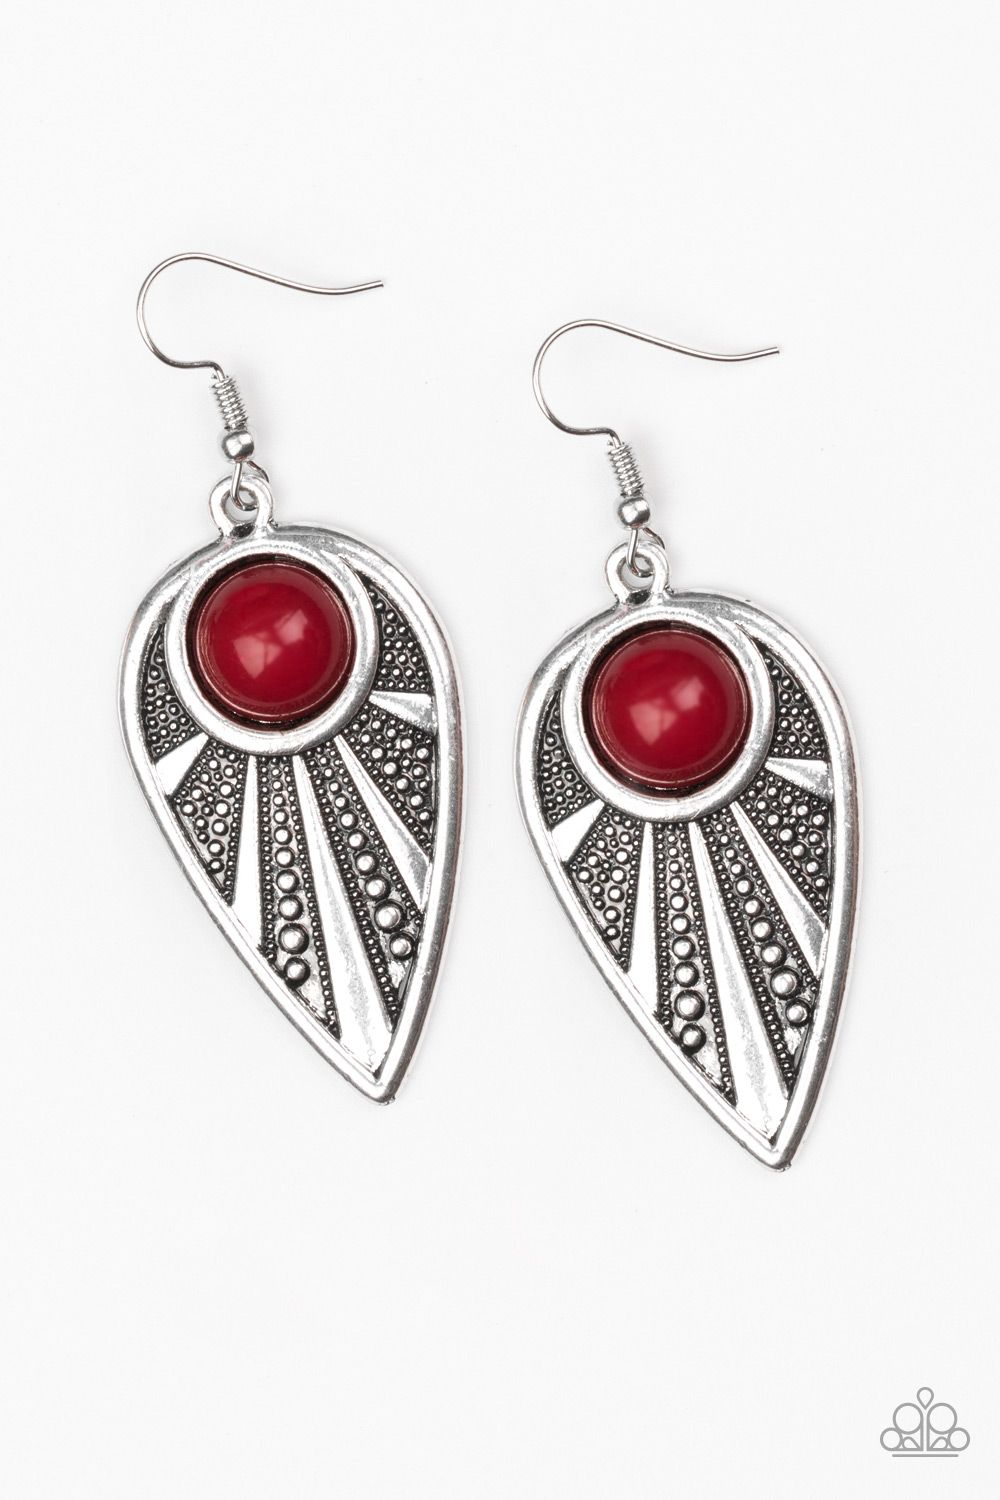 Take A Walk About Red Earrings 5 Lead And Nickel Free